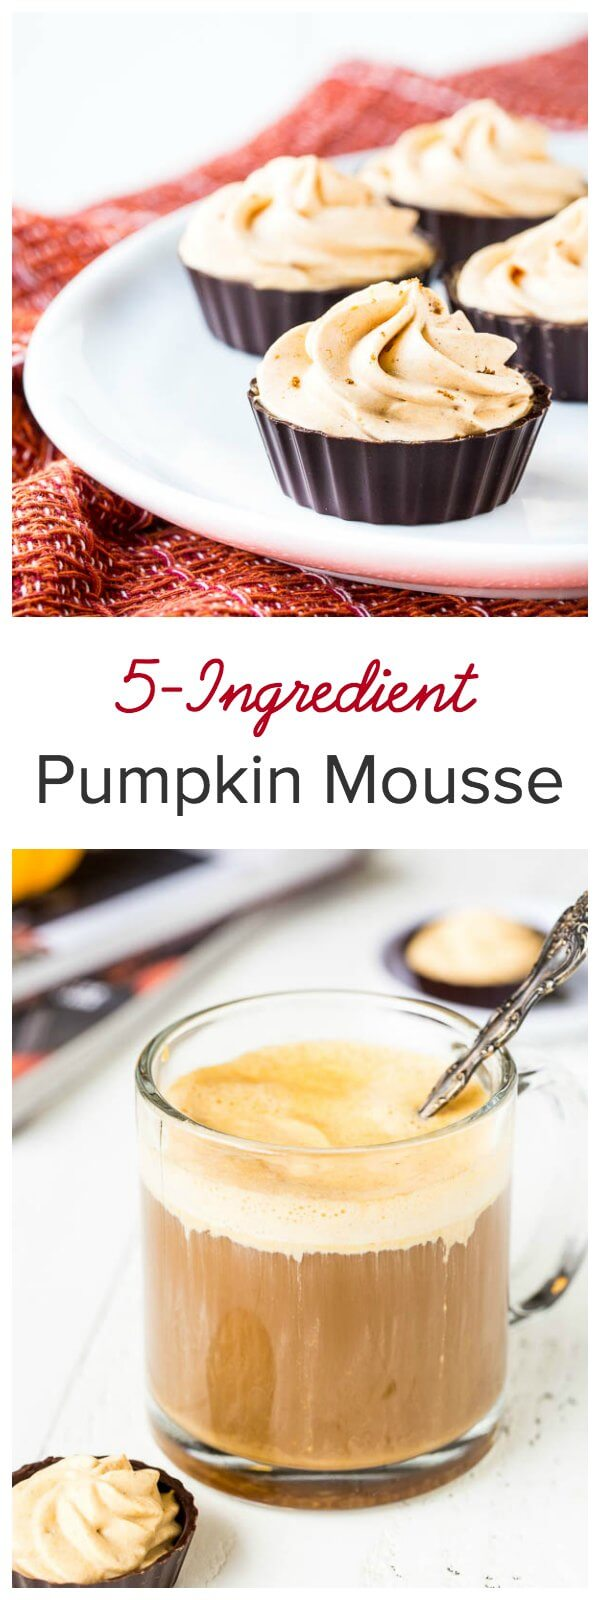 pumpkin-mousse-long